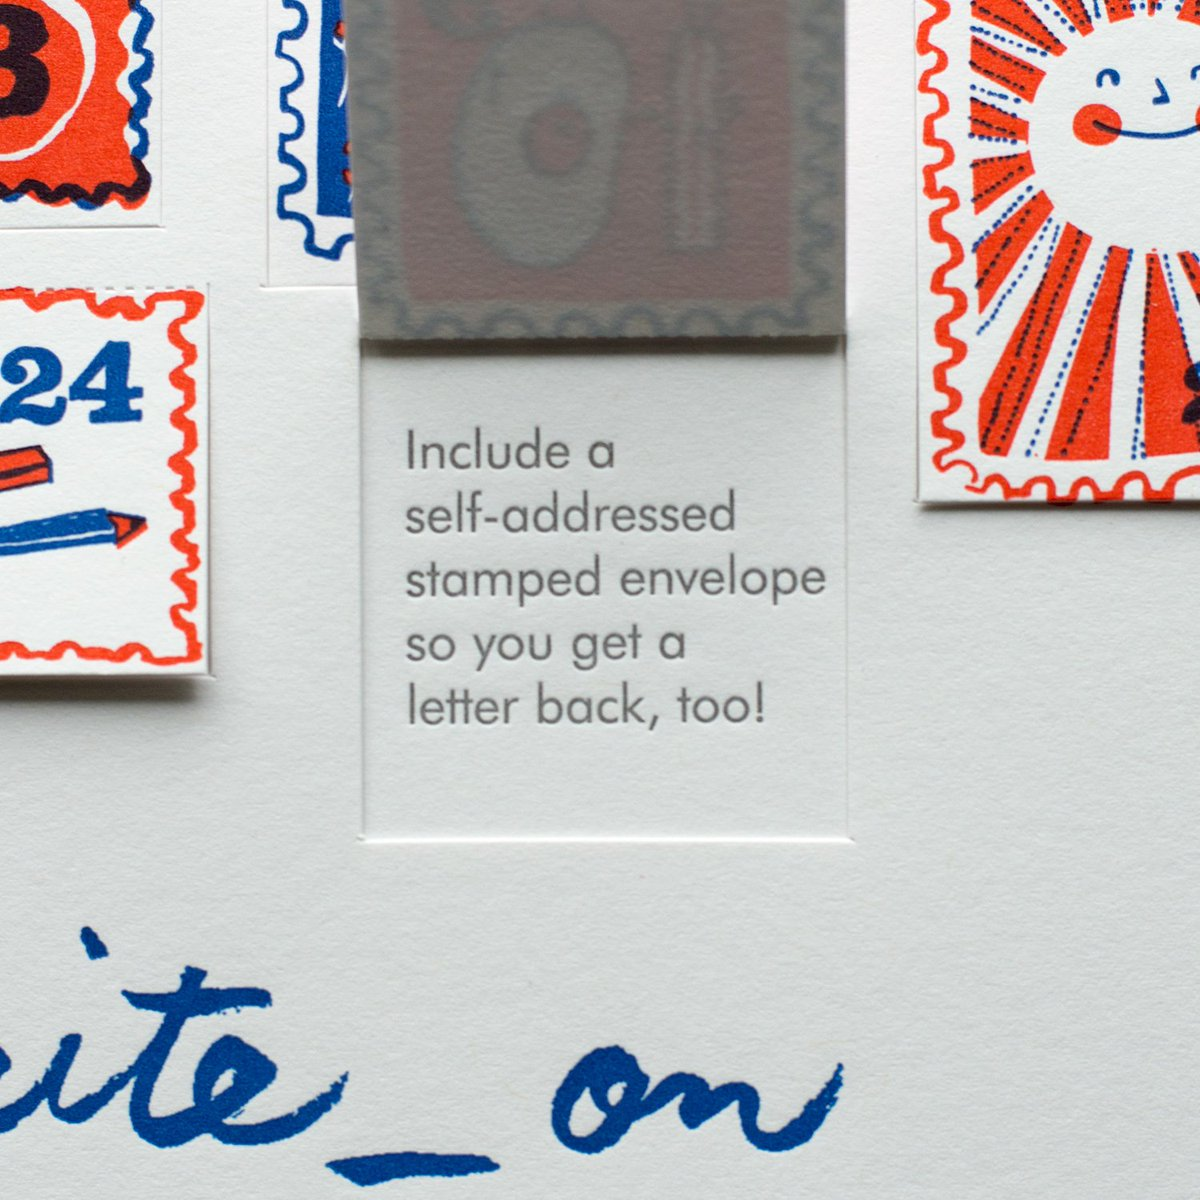 Write_On, Day 6! Include a self-addressed stamped envelope so you get a letter back, too! #write_on #reasonstowrite https://t.co/nZEuXOJkYX